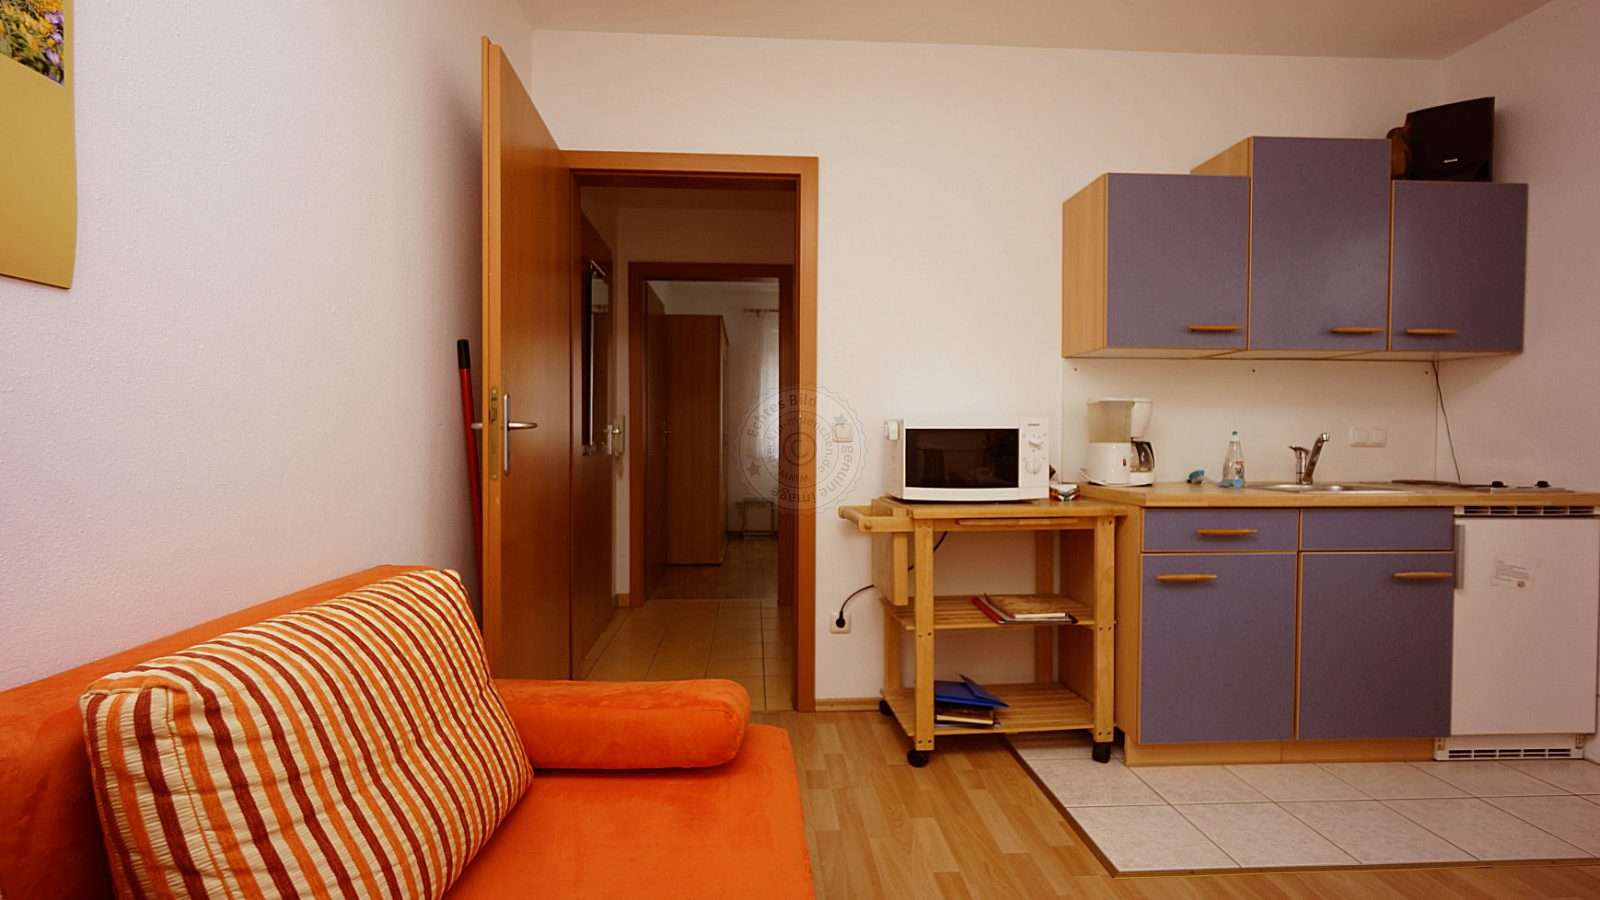 Ideal accommodation for self-catering